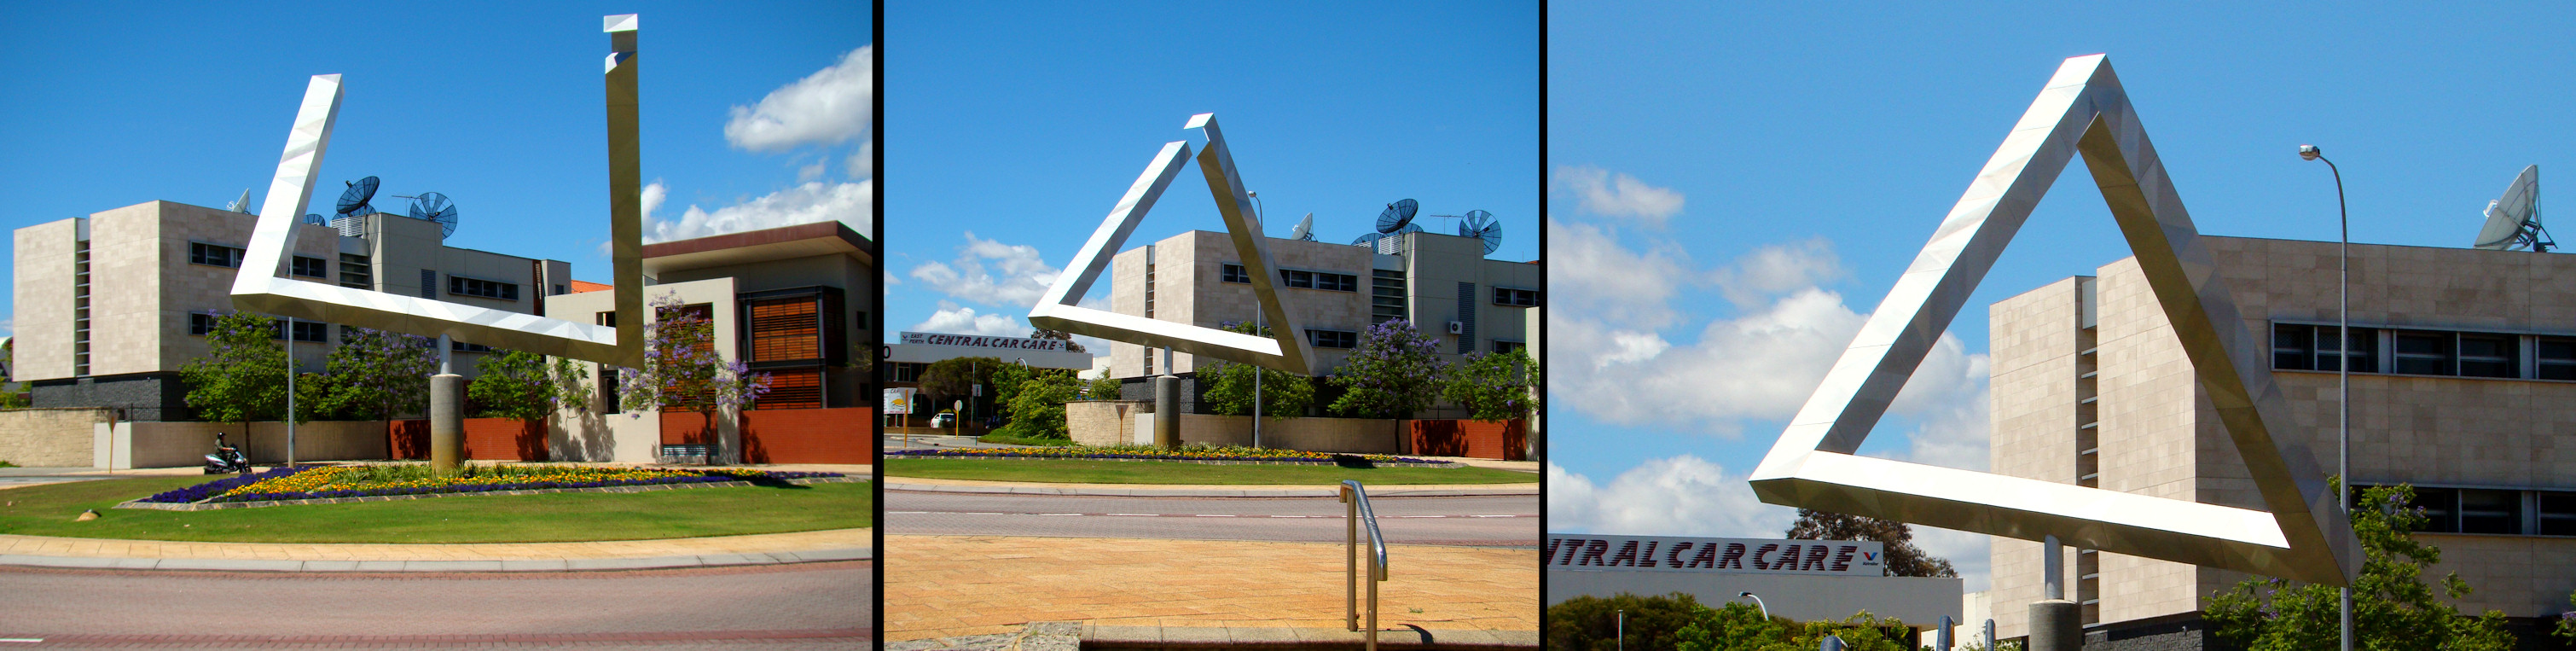 Perth Impossible Triangle - click to enlarge. It depends on your perspective!